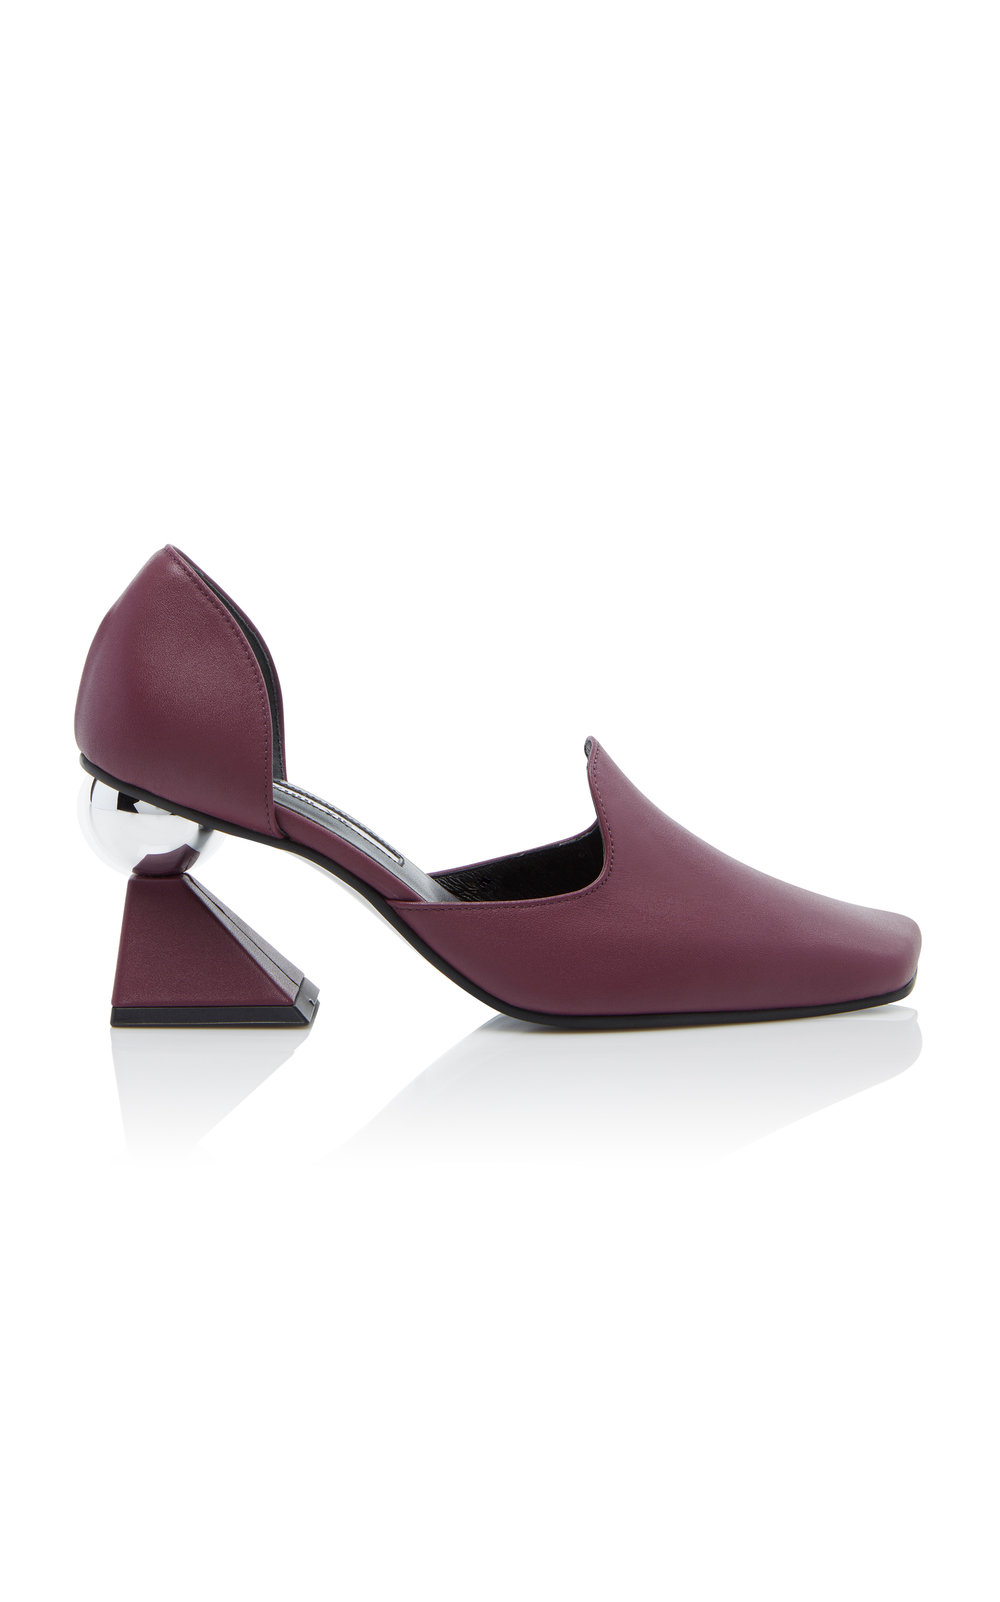 large_yuul-yie-purple-block-heel-pump.jpg